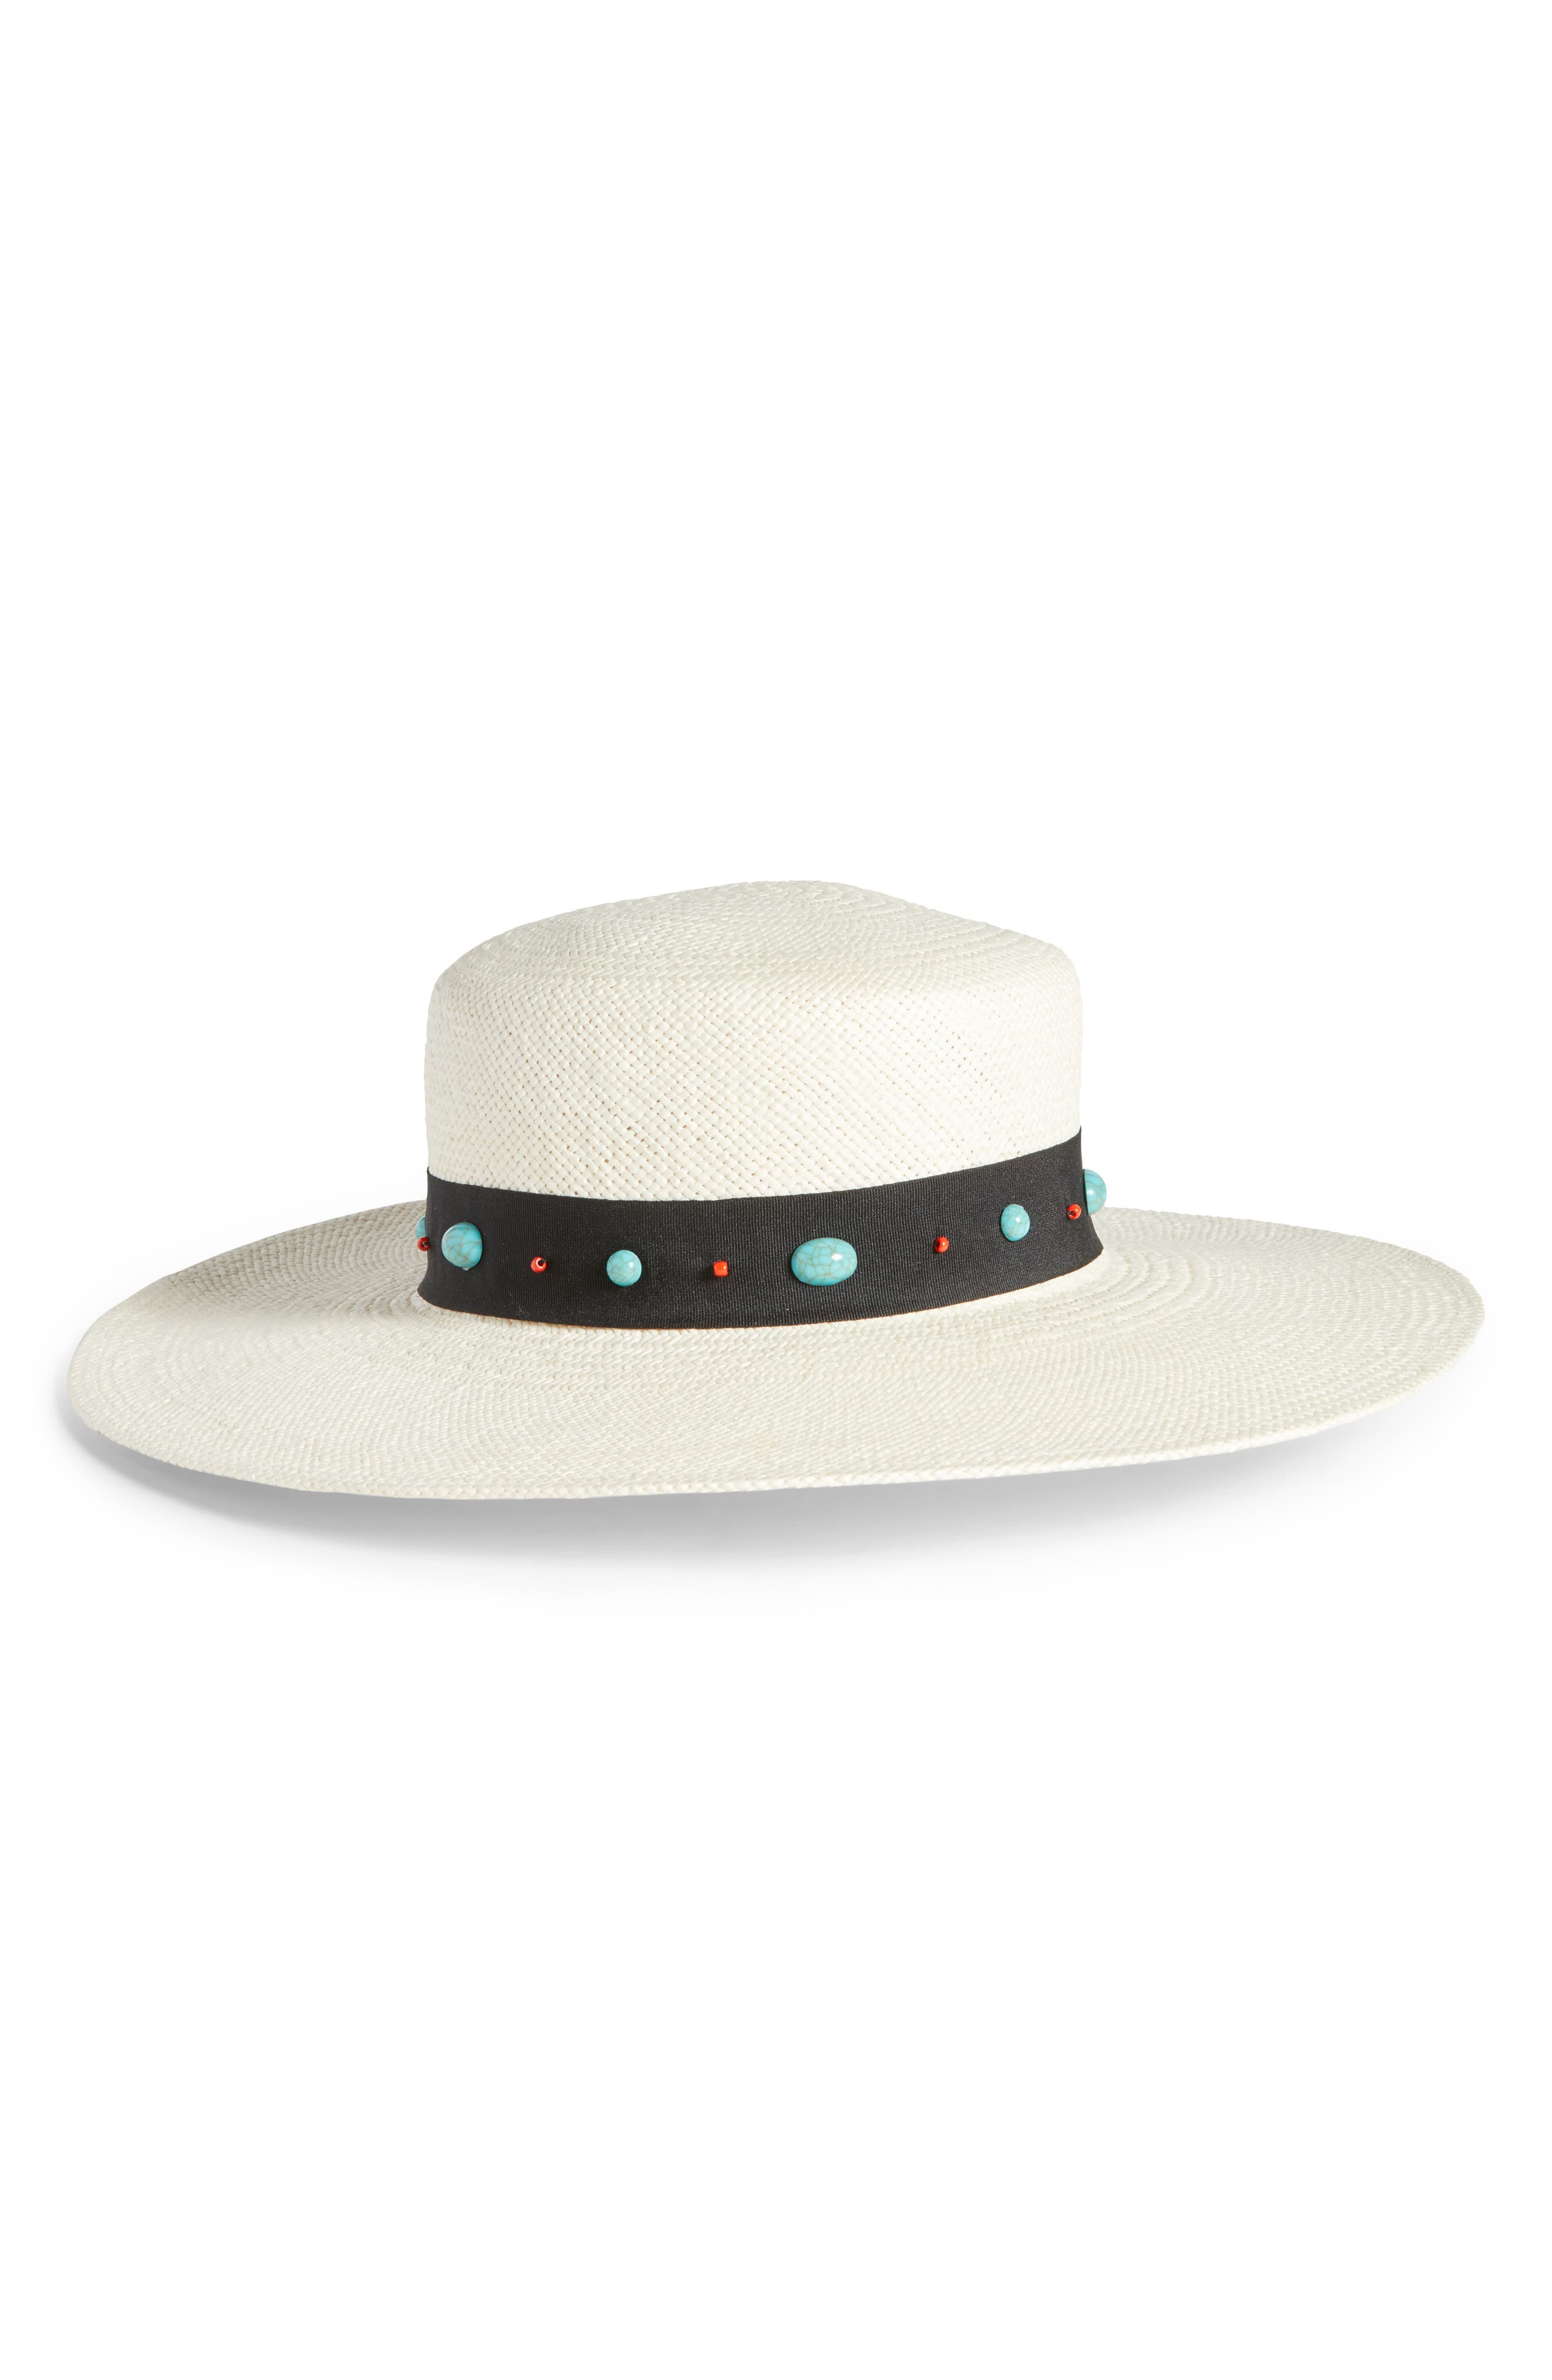 Western Straw Boater Hat,                             Main thumbnail 1, color,                             900